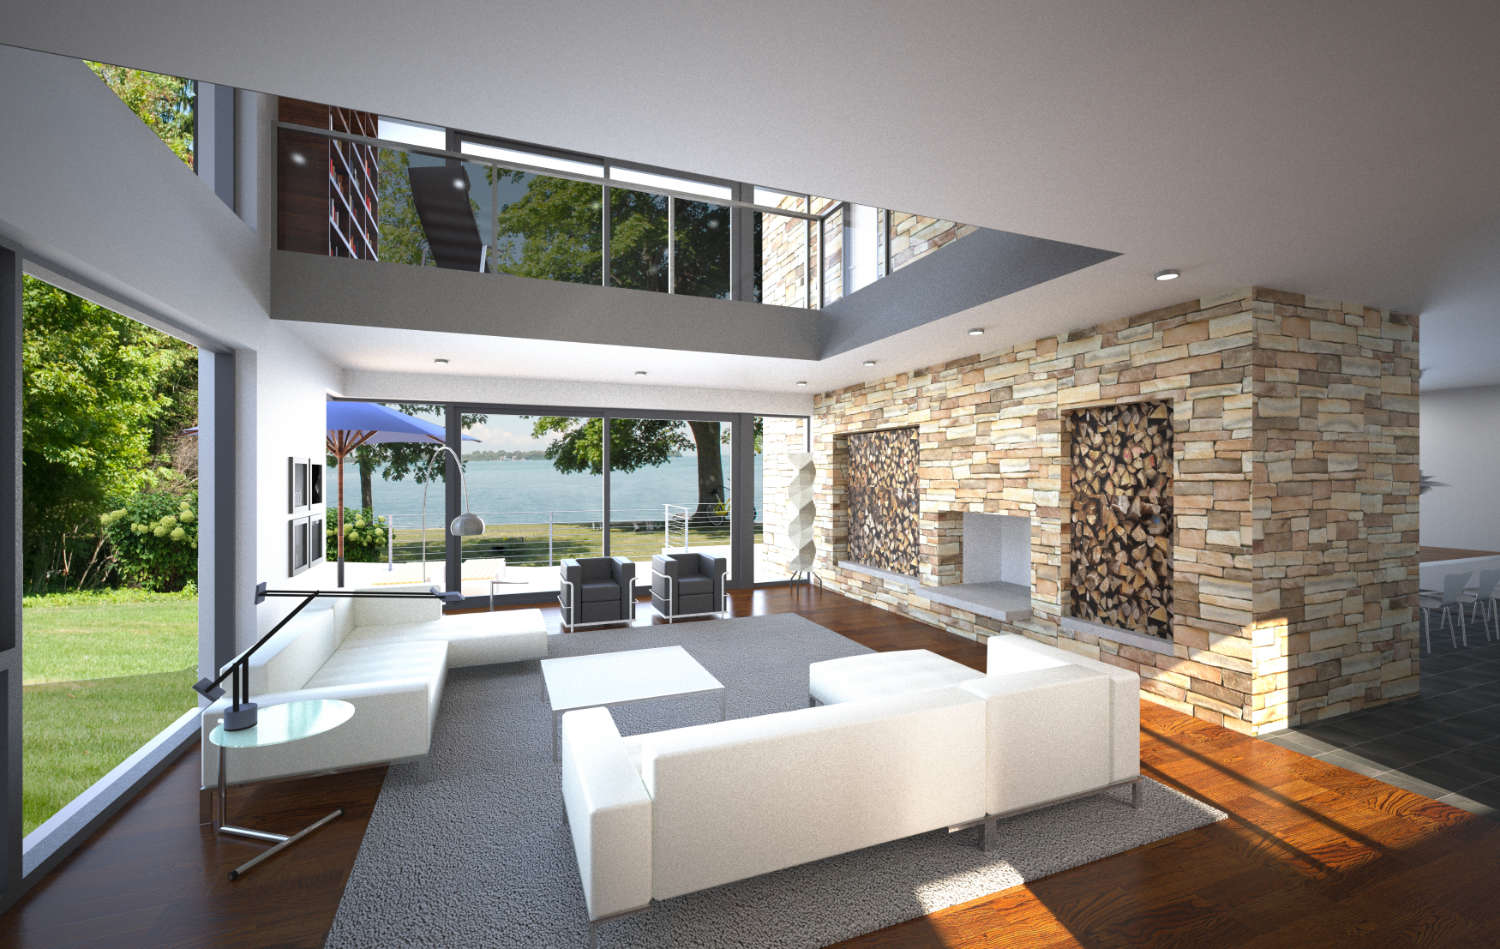 Double height living area with stone fireplace